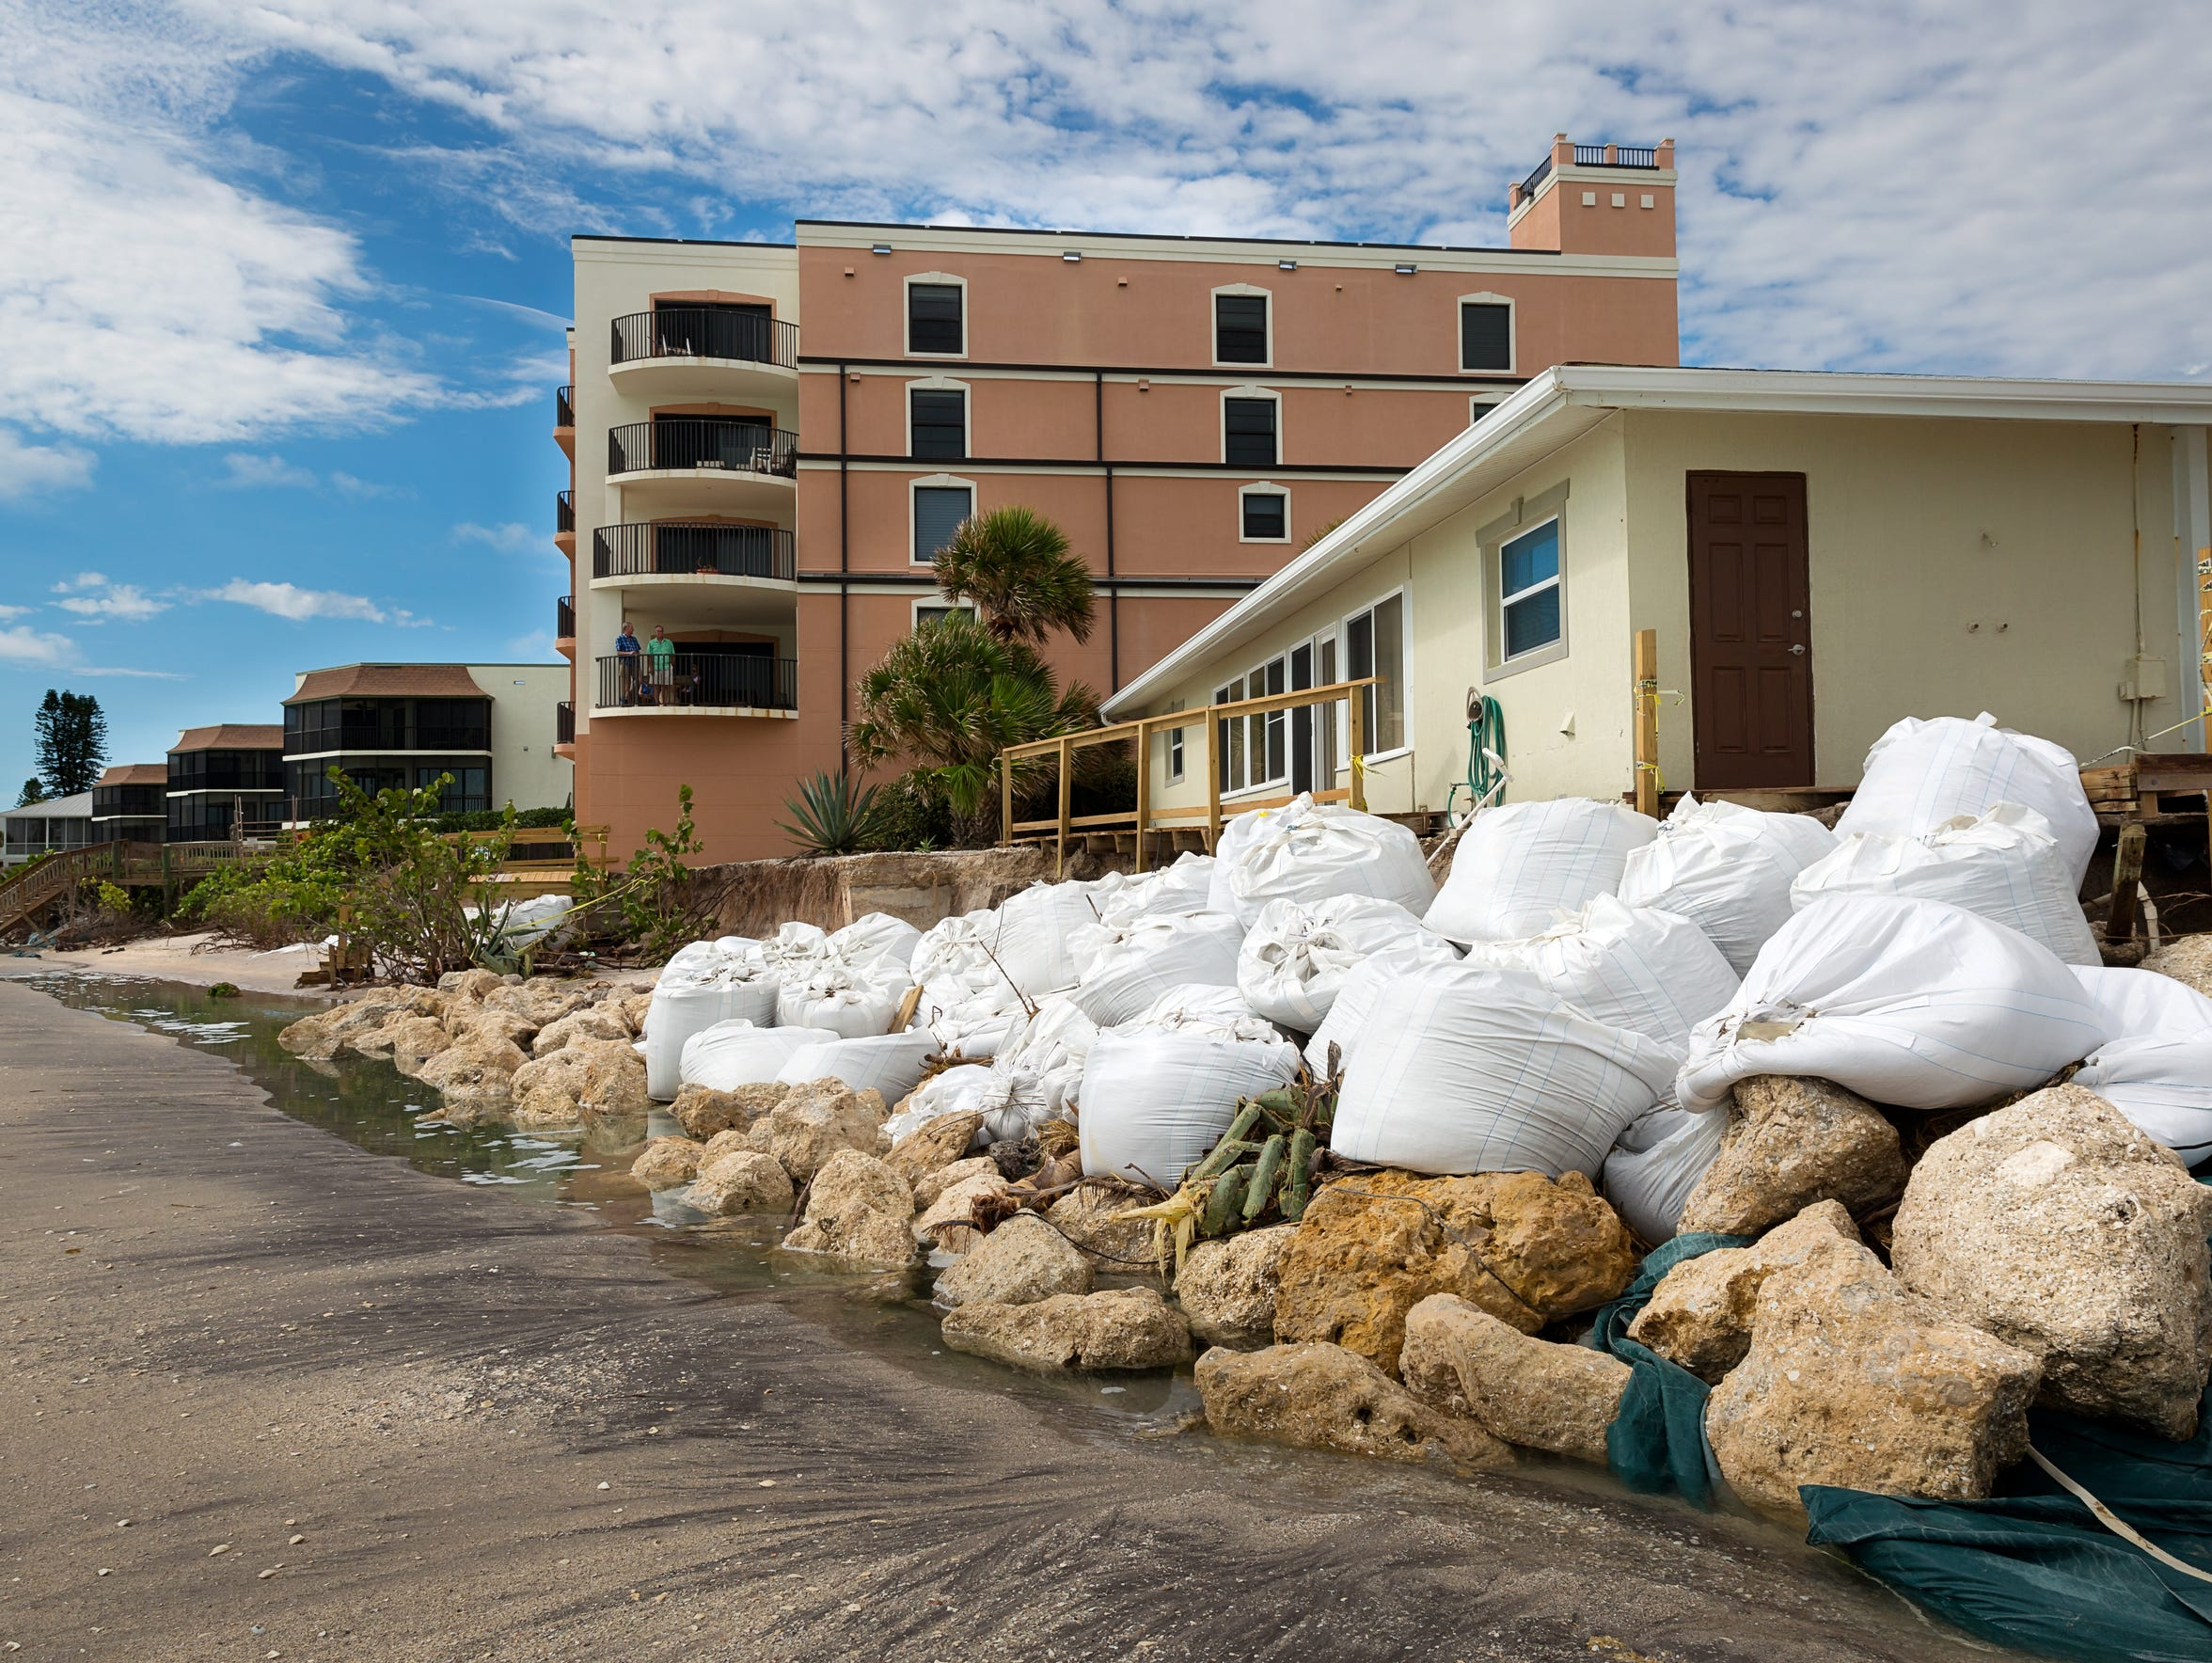 Sand bags and other attempts to slow erosion sit scattered